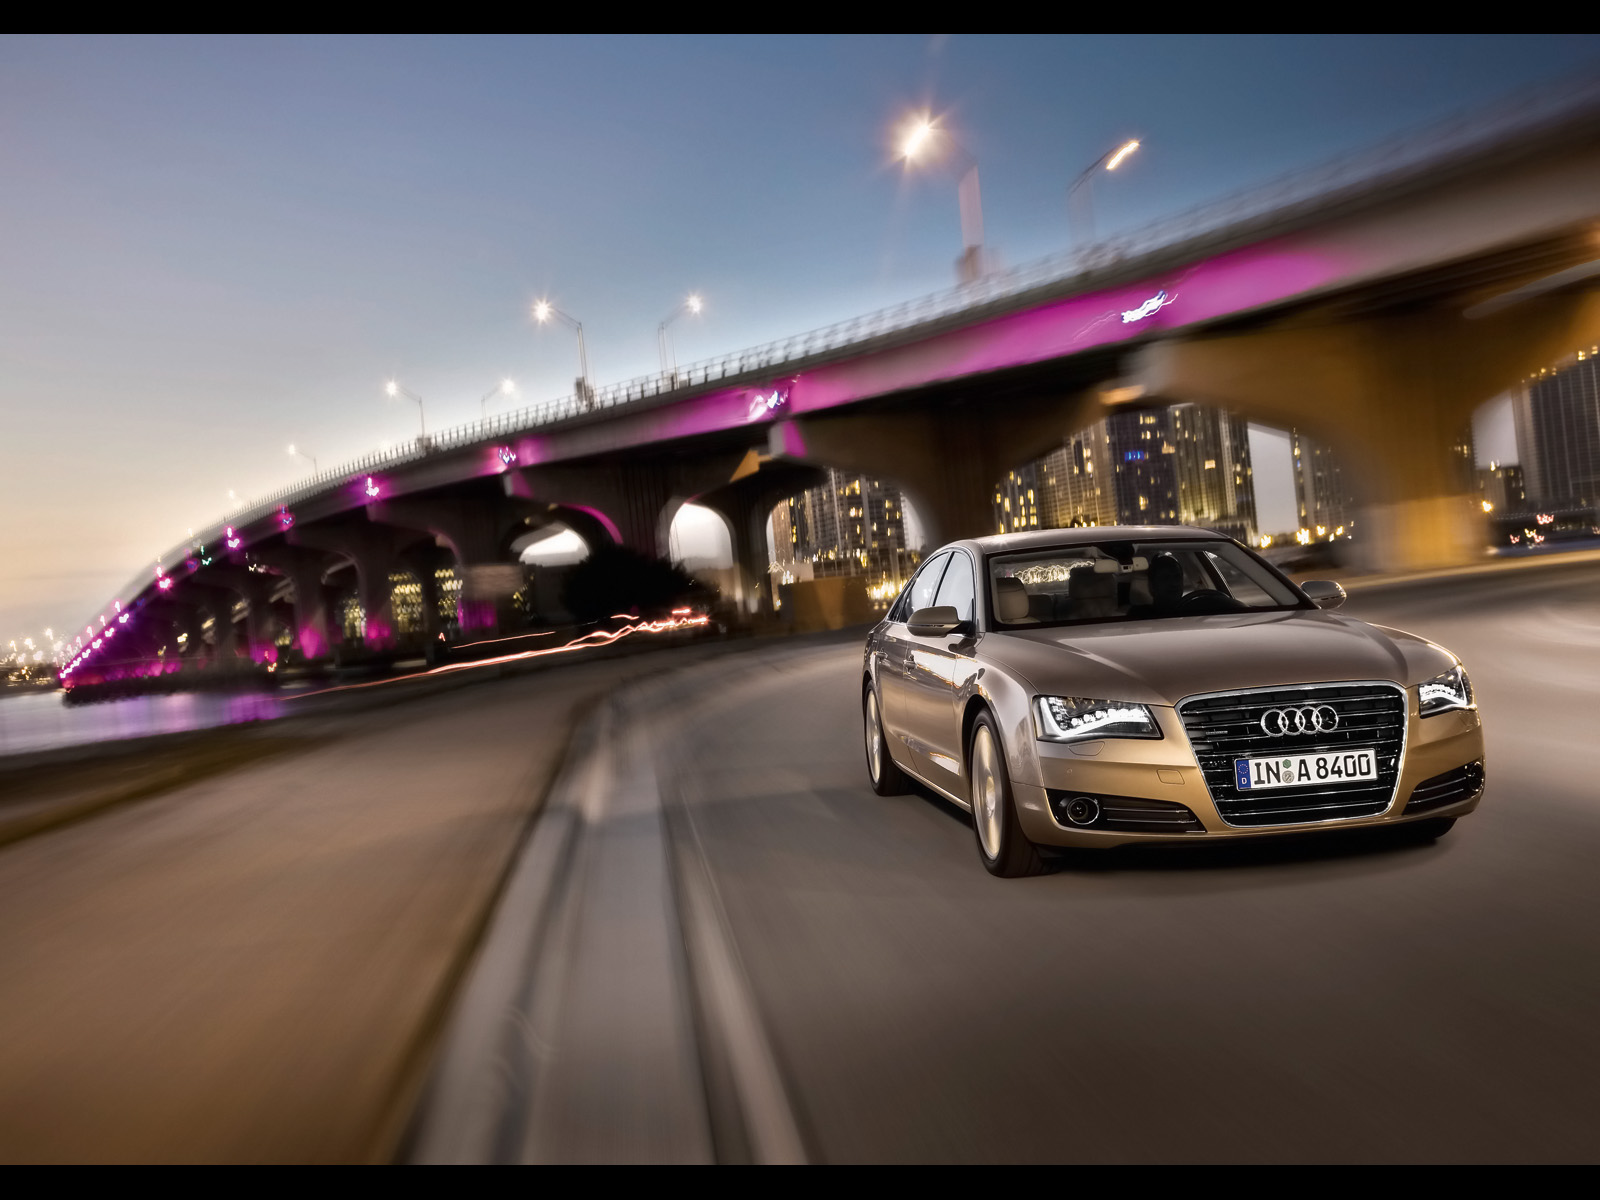 Audi A8 Wallpapers Download T1OV18N   4USkY 1600x1200